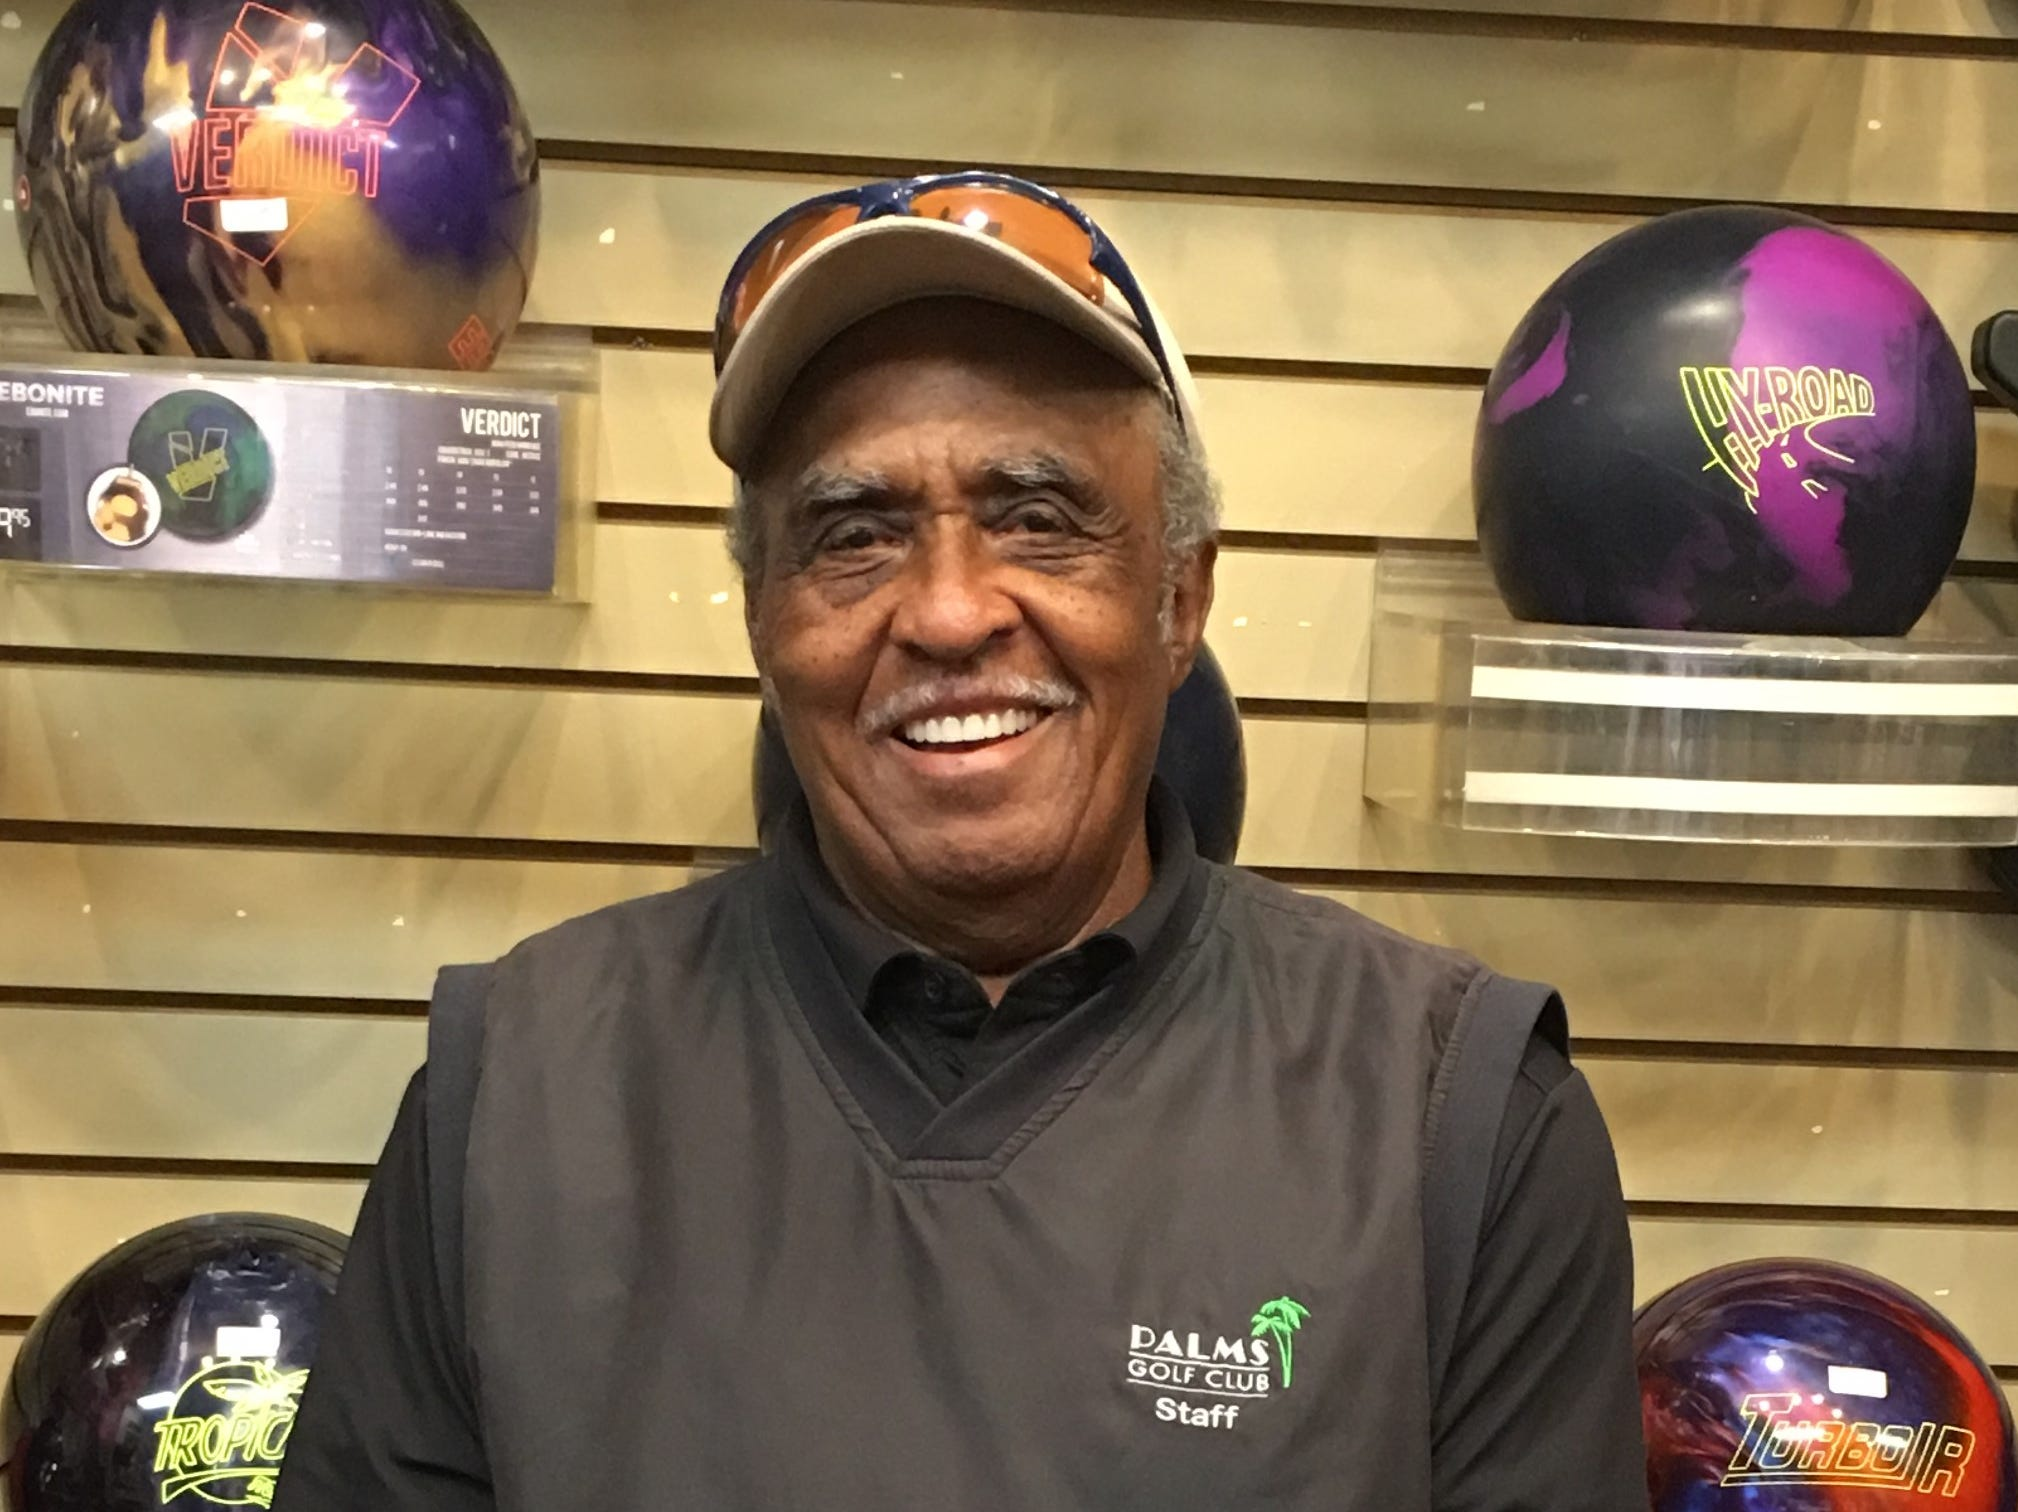 Mesquite bowler rolls 603 series — five days after turning 85